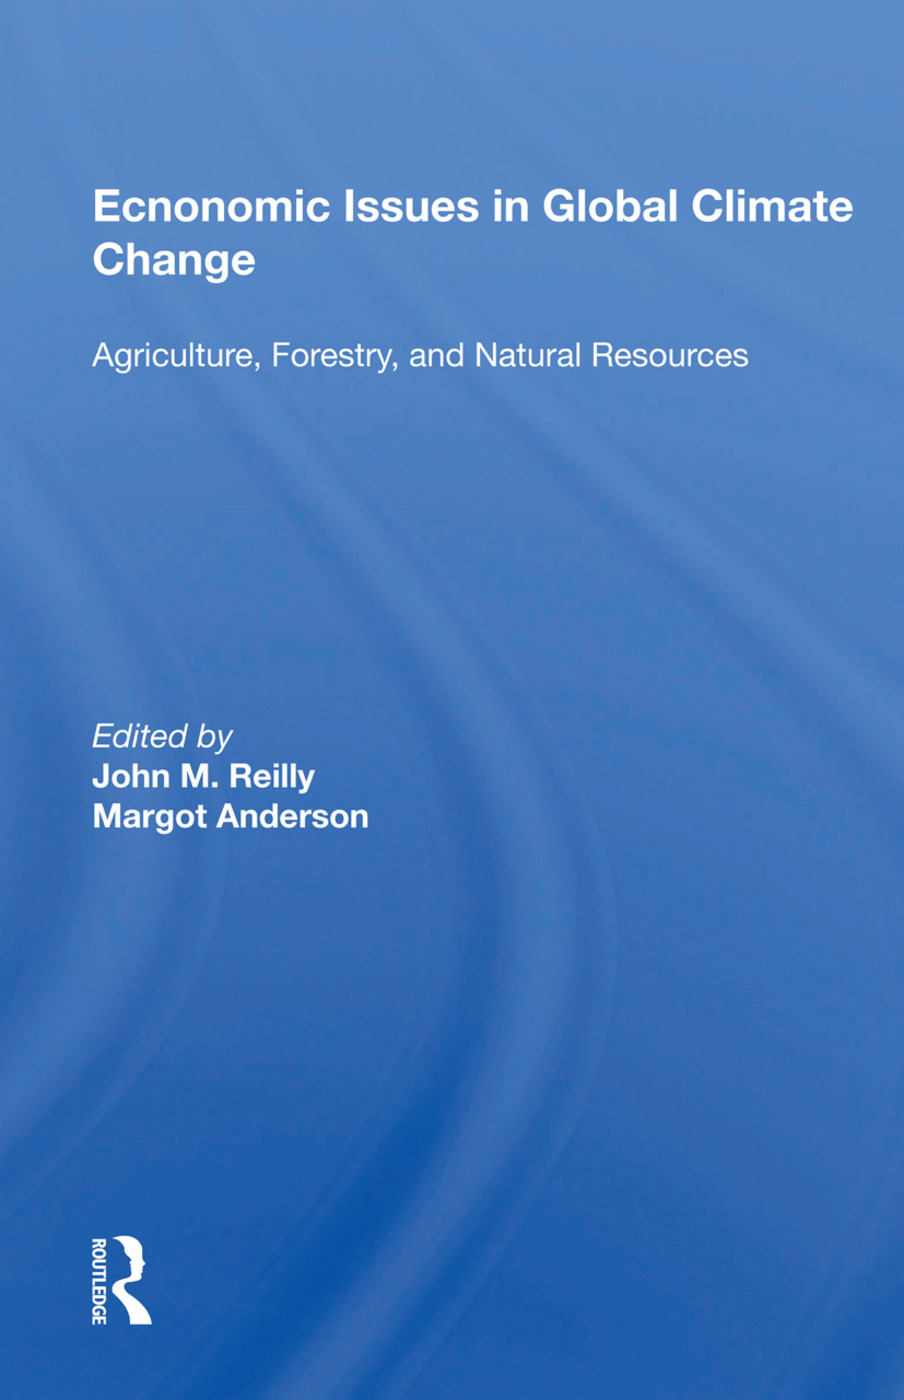 Economic Issues in Global Climate Change: